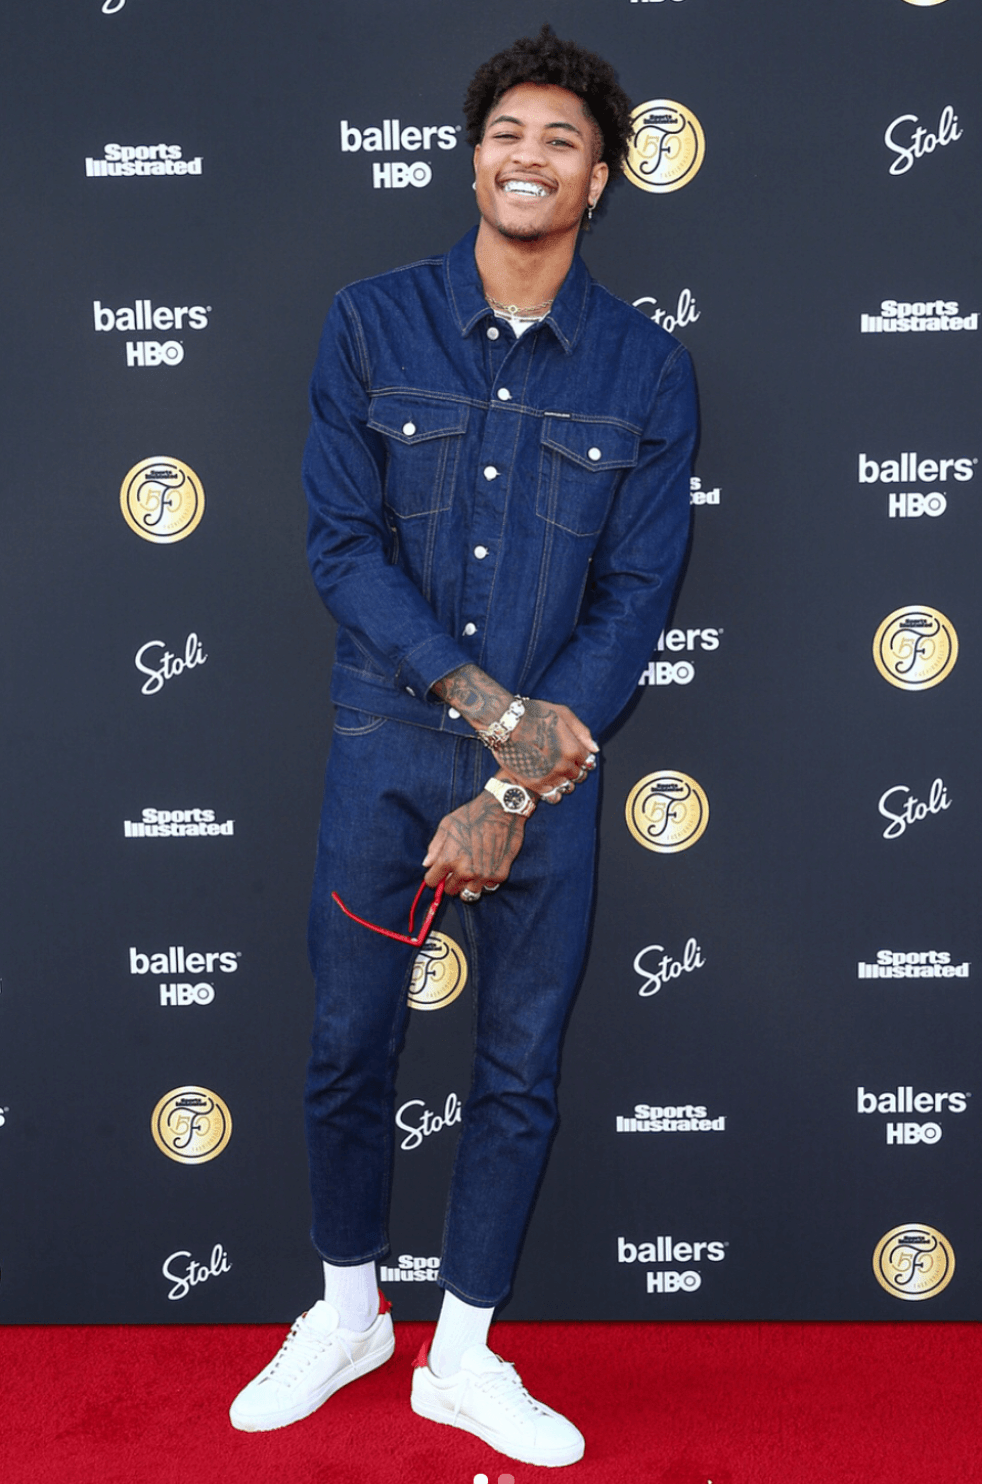 Kelly Oubre Jr in the Raf Simons x adidas Stan Smith